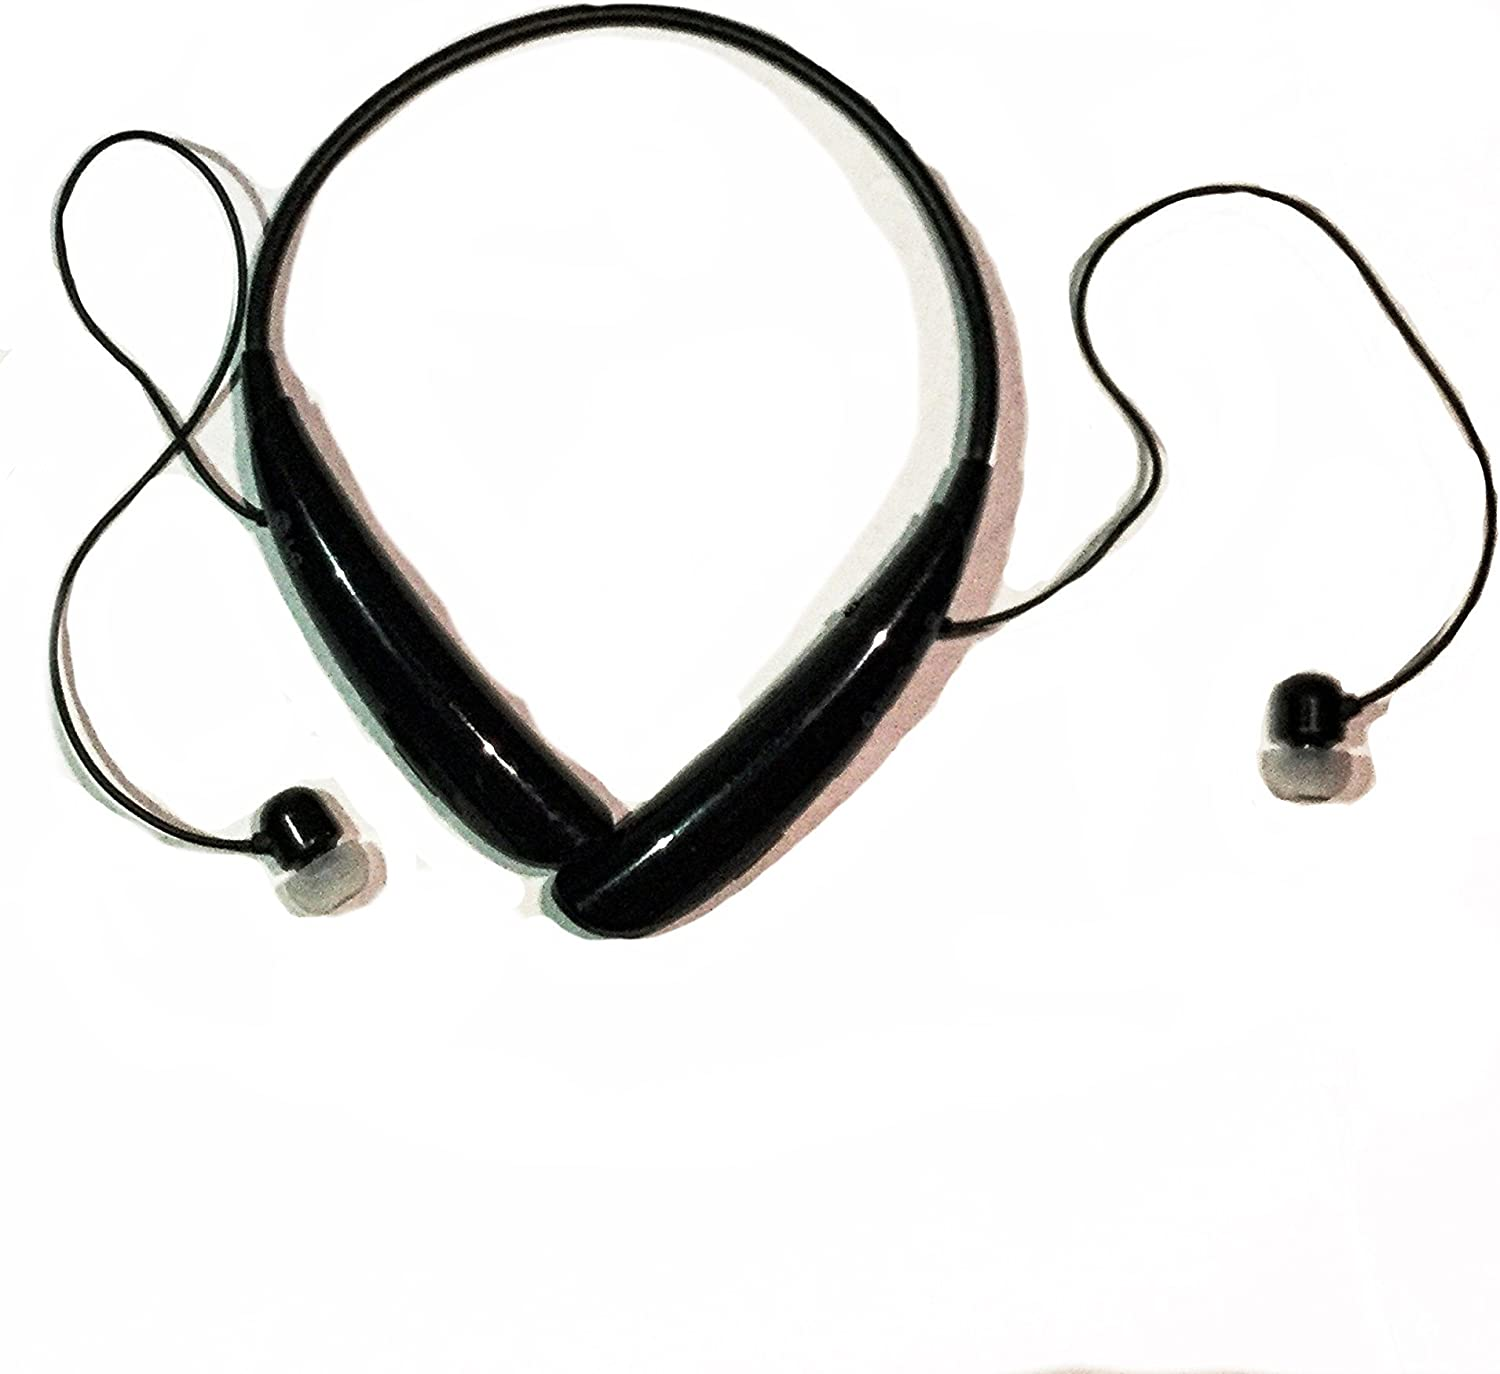 LG Electronics Tone Pro Bluetooth Stereo Headset - Retail Packaging - Black